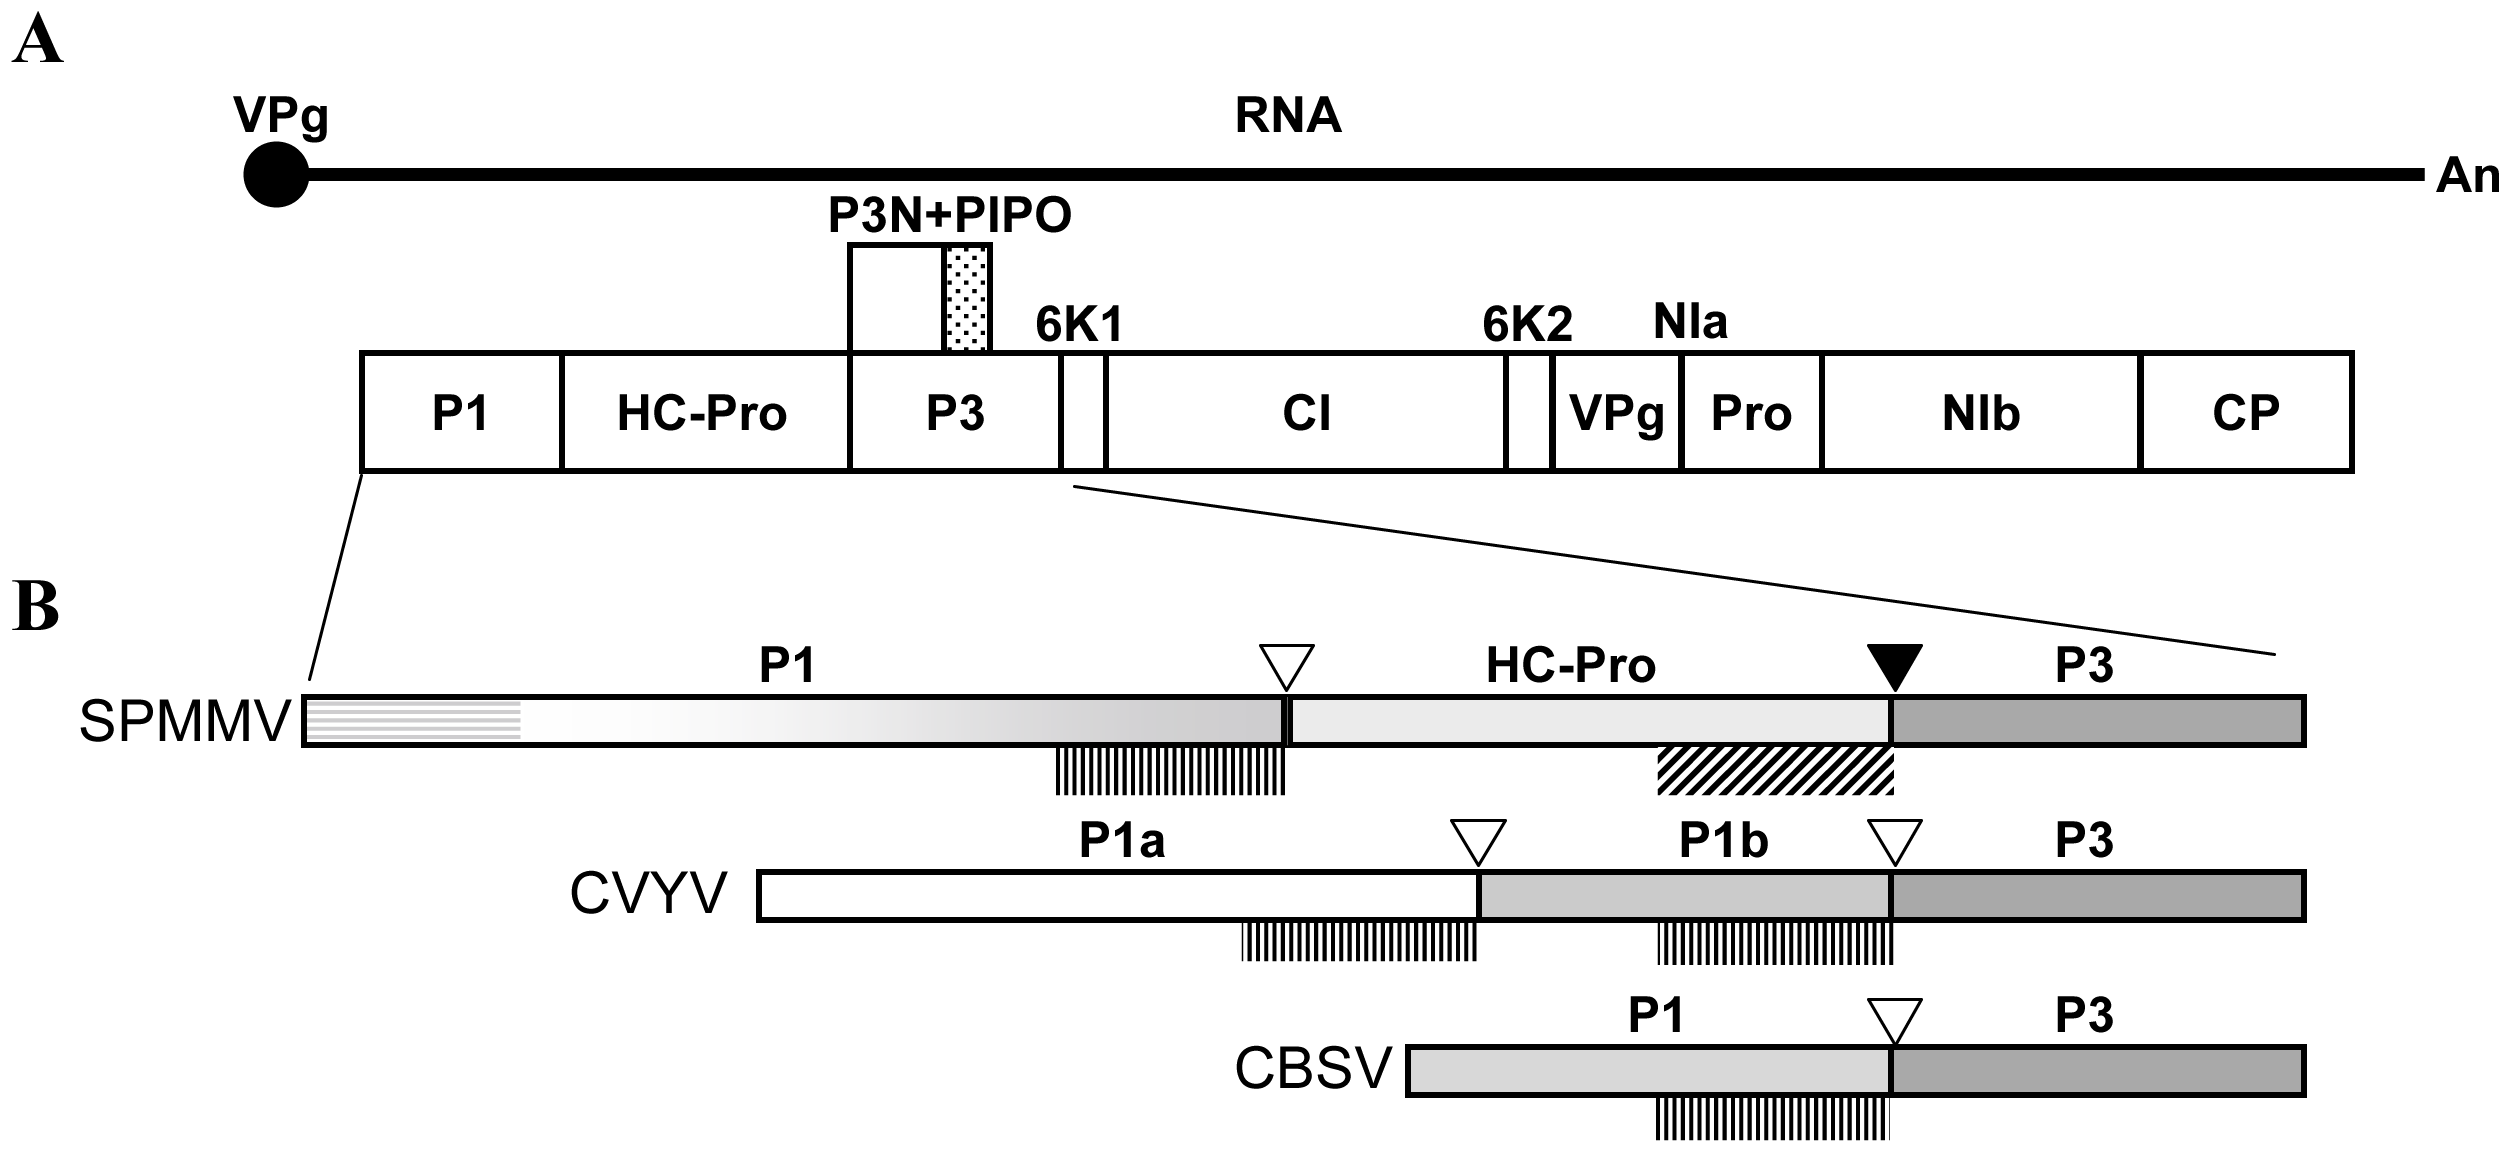 Genome structure of SPMMV ipomovirus and sequence peculiarities of the N-terminal part of its polyprotein which includes the P1 protein.